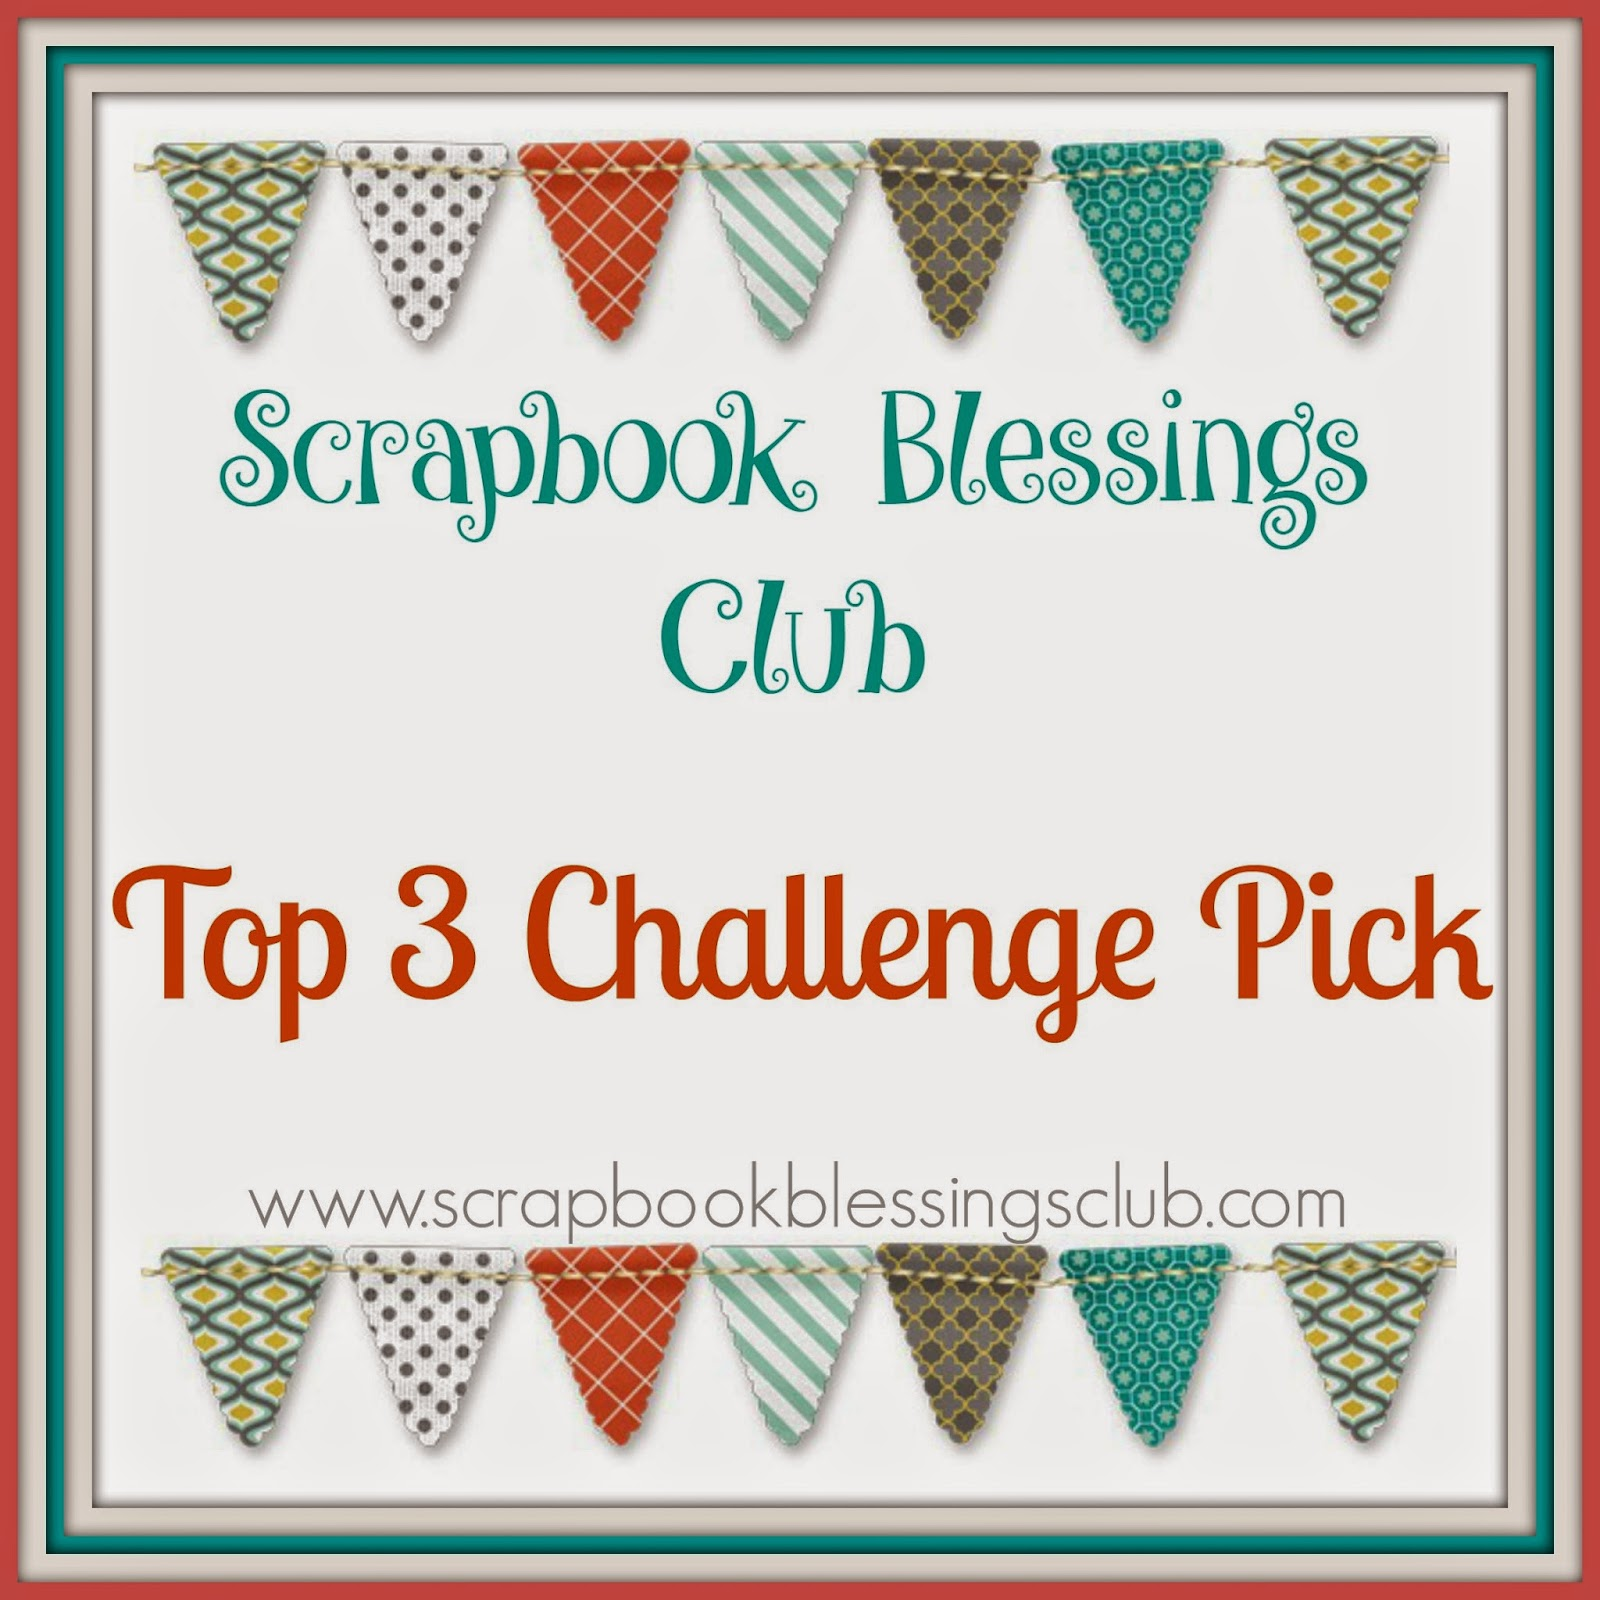 Top 10 Scrapbook Blessings Club